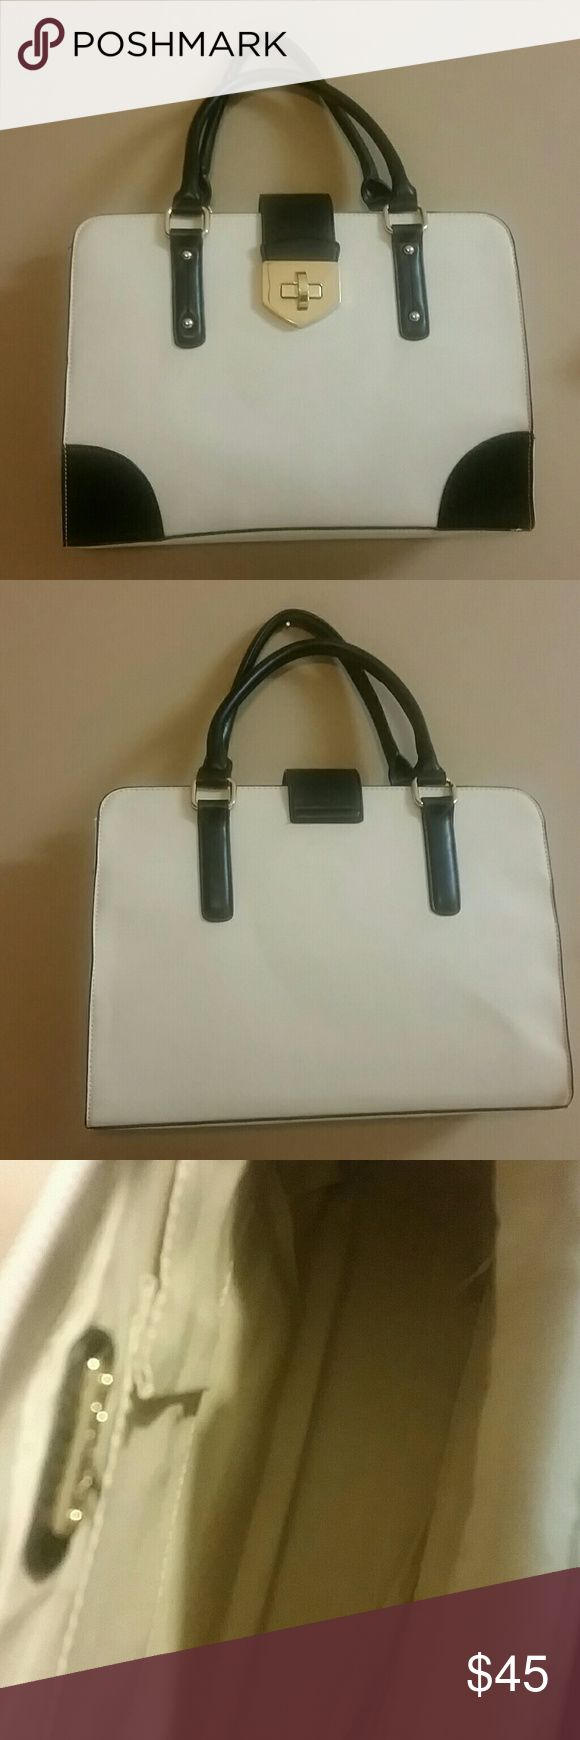 ALDO laptop purse bag This beautiful ALDO bag is brand new, and is super clean, this purse has a space for your laptop and more comes with adjustable scraps. Aldo Bags Laptop Bags